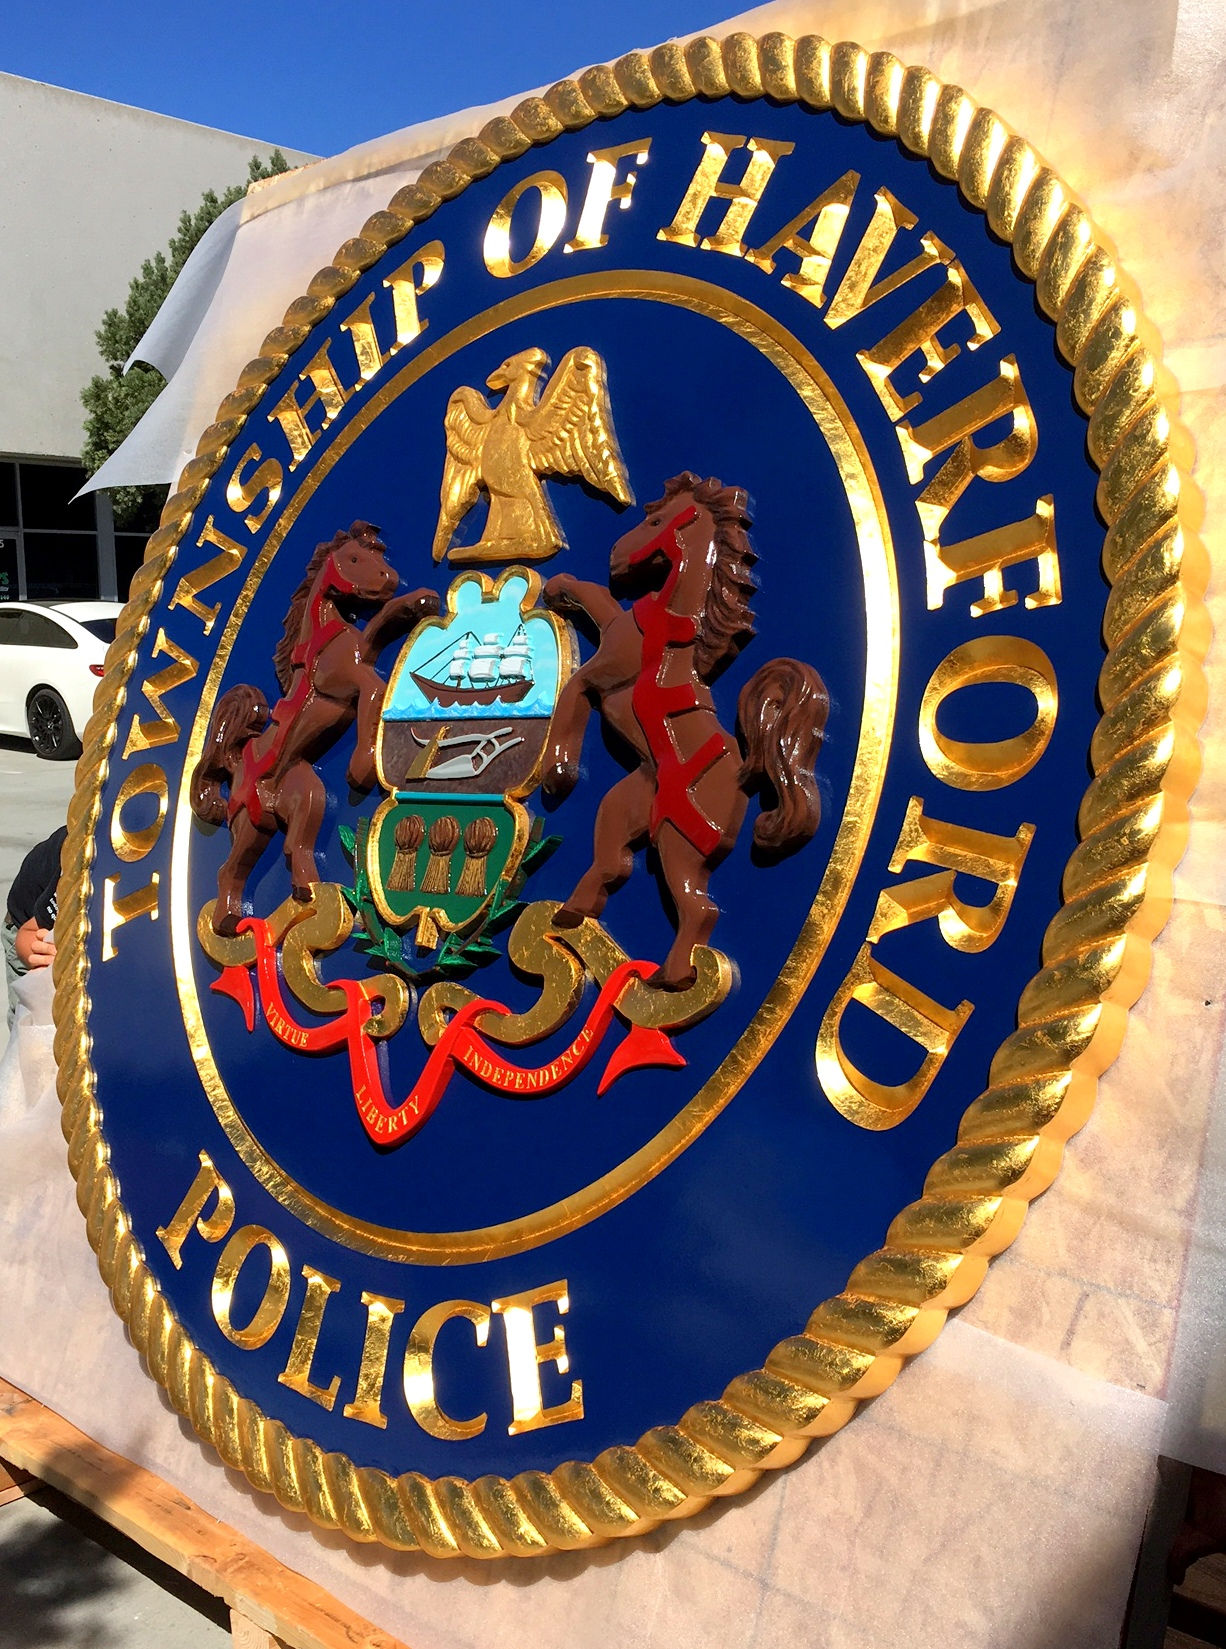 X33396 - Large  3-D  Carved  Wall plaque of the Seal  of Police Department of Haverford, Pennsylvania, with Extensive 24K Gold-leaf Gilding (Side View)